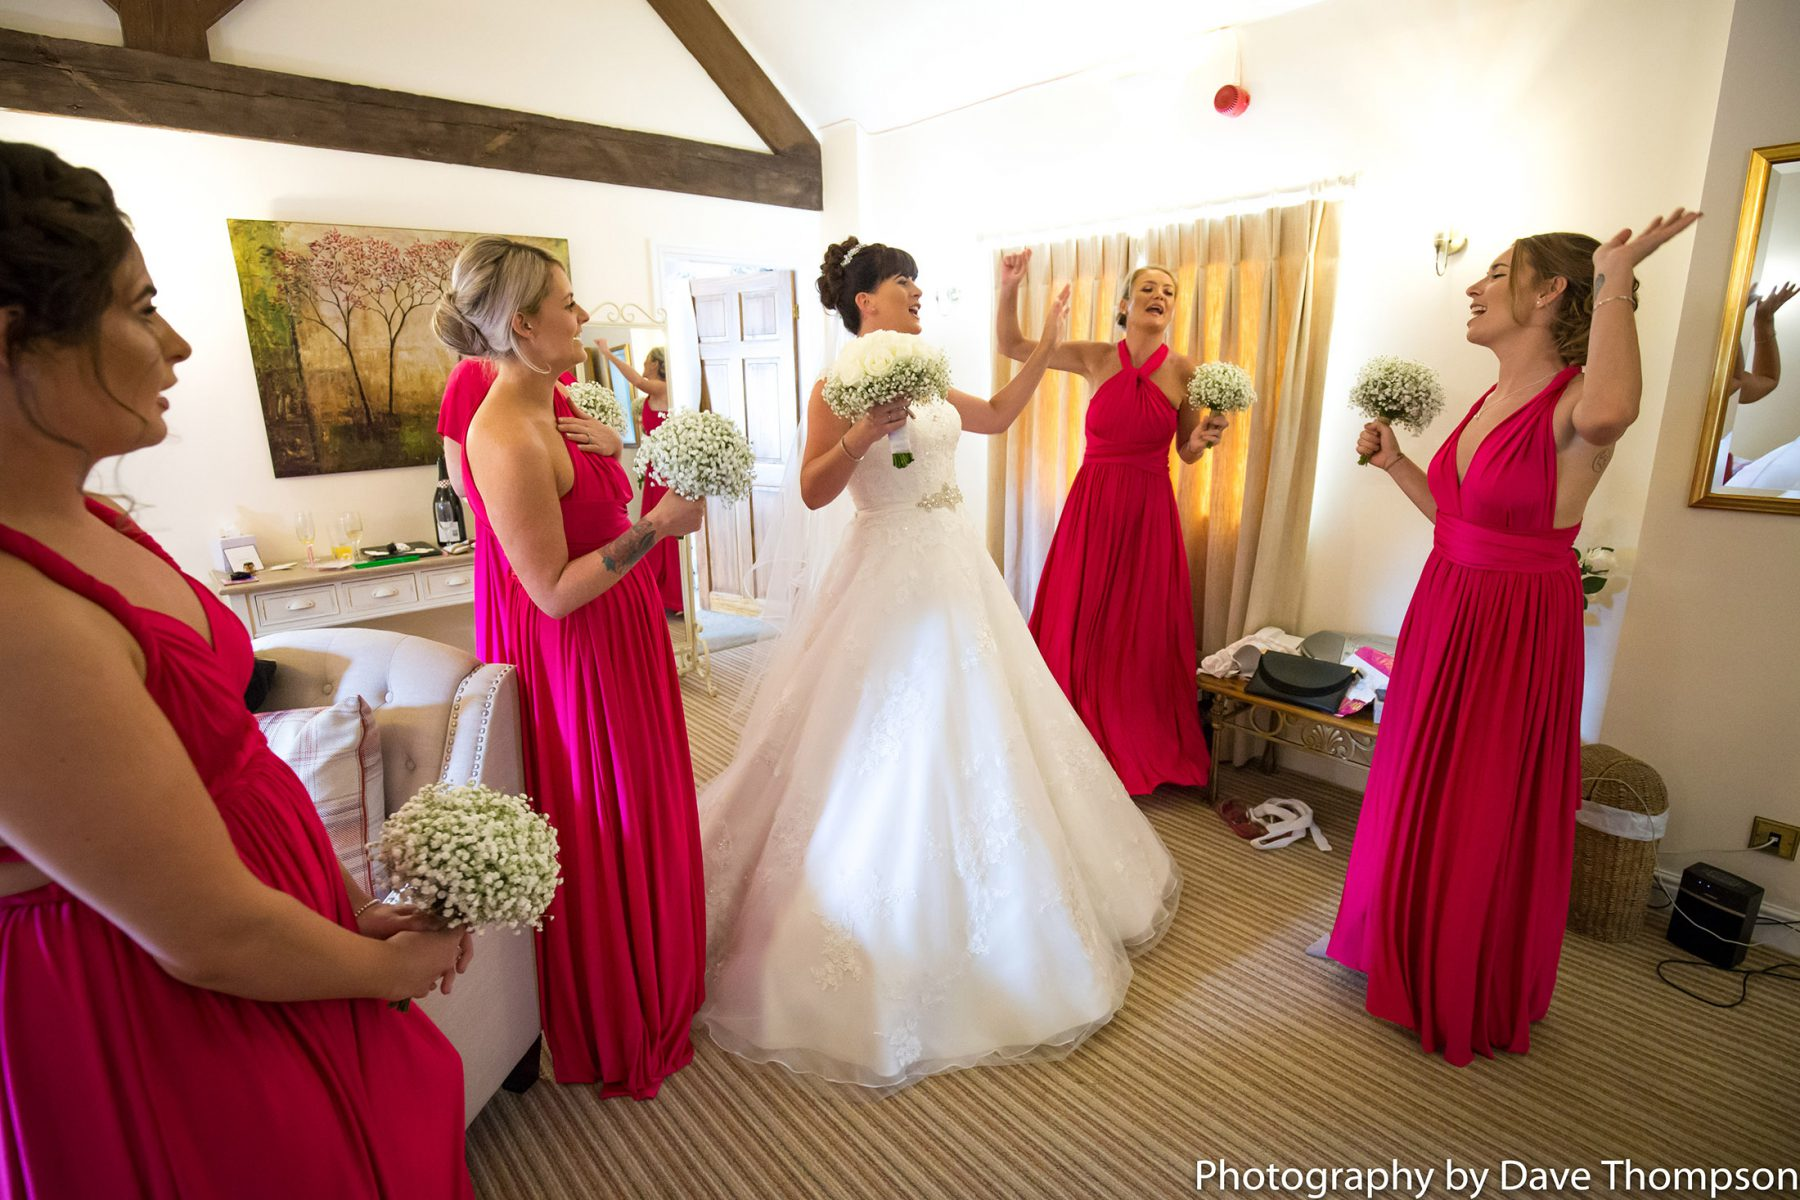 The bride dances with the bridesmaids